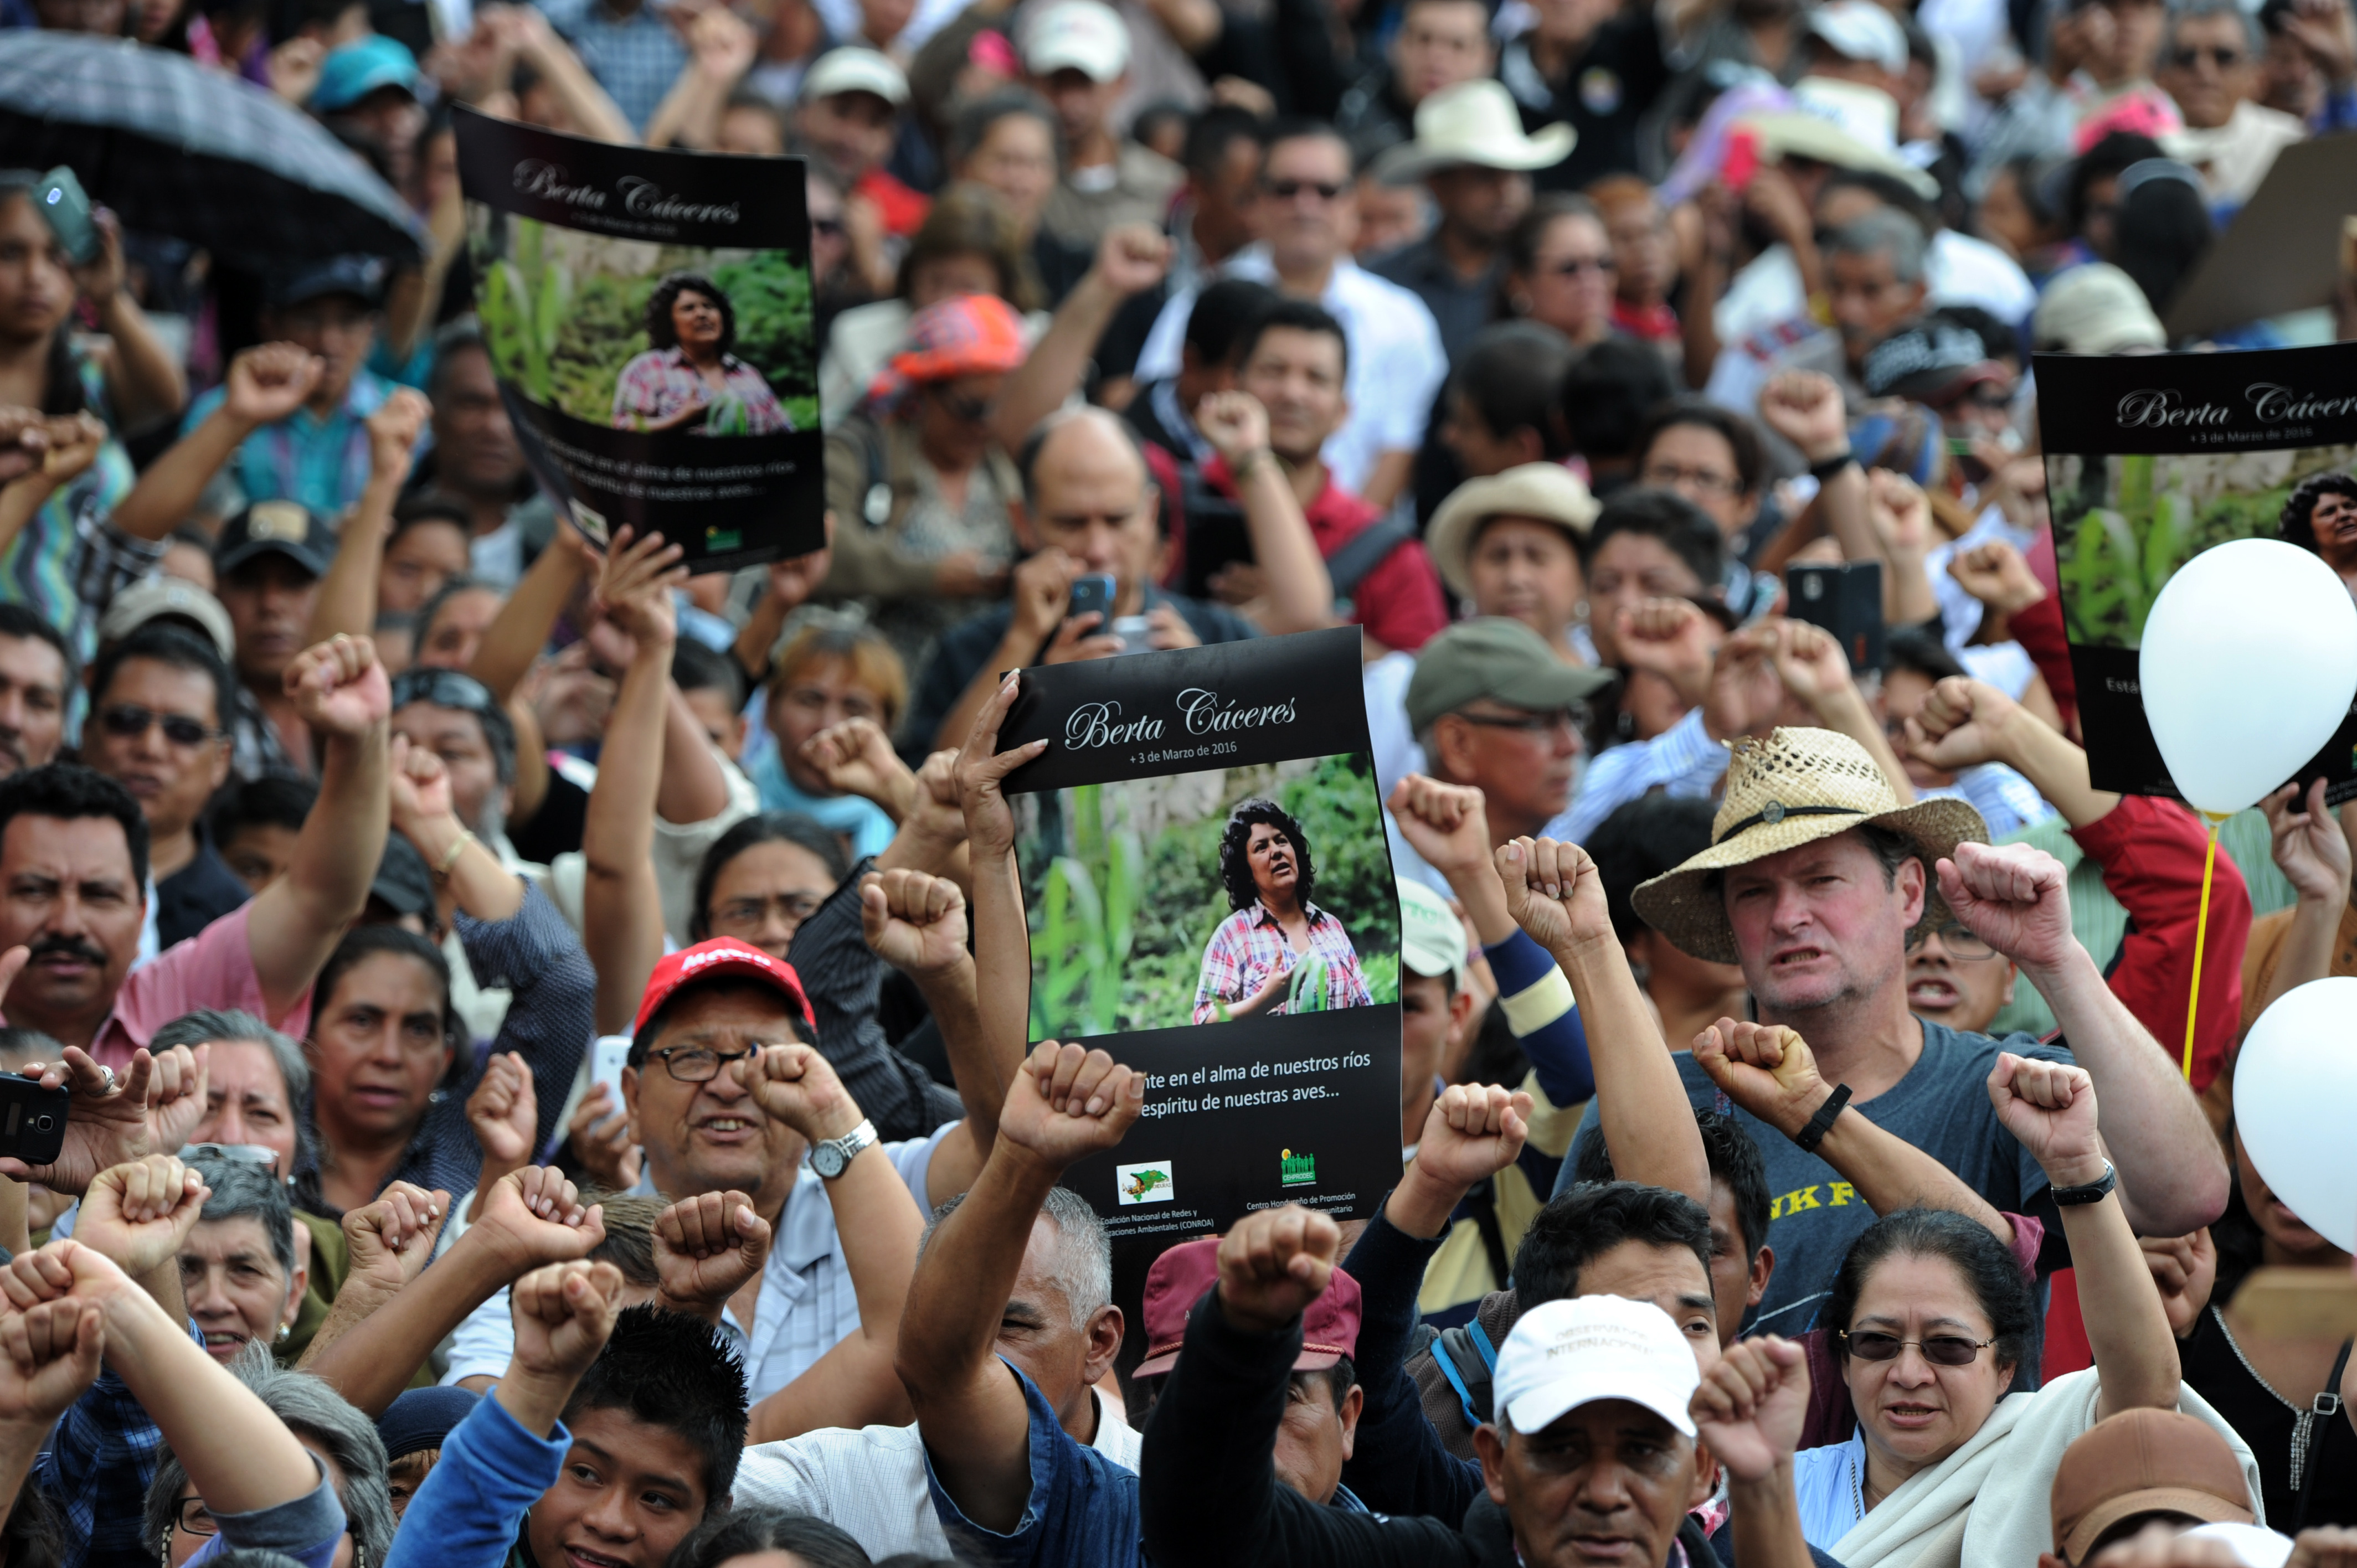 People attend the funeral of murdered indigenous activist Berta Caceres, in La Esperanza, 200 km northwest of Tegucigalpa, on March 5, 2016. Honduran indigenous activist Berta Caceres, a renowned environmentalist whose family has labeled her killing an assassination, was shot dead on March 3 at her home in La Esperanza. Caceres rose to prominence for leading the indigenous Lenca people in a struggle against a hydroelectric dam project that would have flooded large areas of native lands and cut off water supplies to hundreds.  AFP PHOTO / ORLANDO SIERRA / AFP / ORLANDO SIERRA        (Photo credit should read ORLANDO SIERRA/AFP/Getty Images)